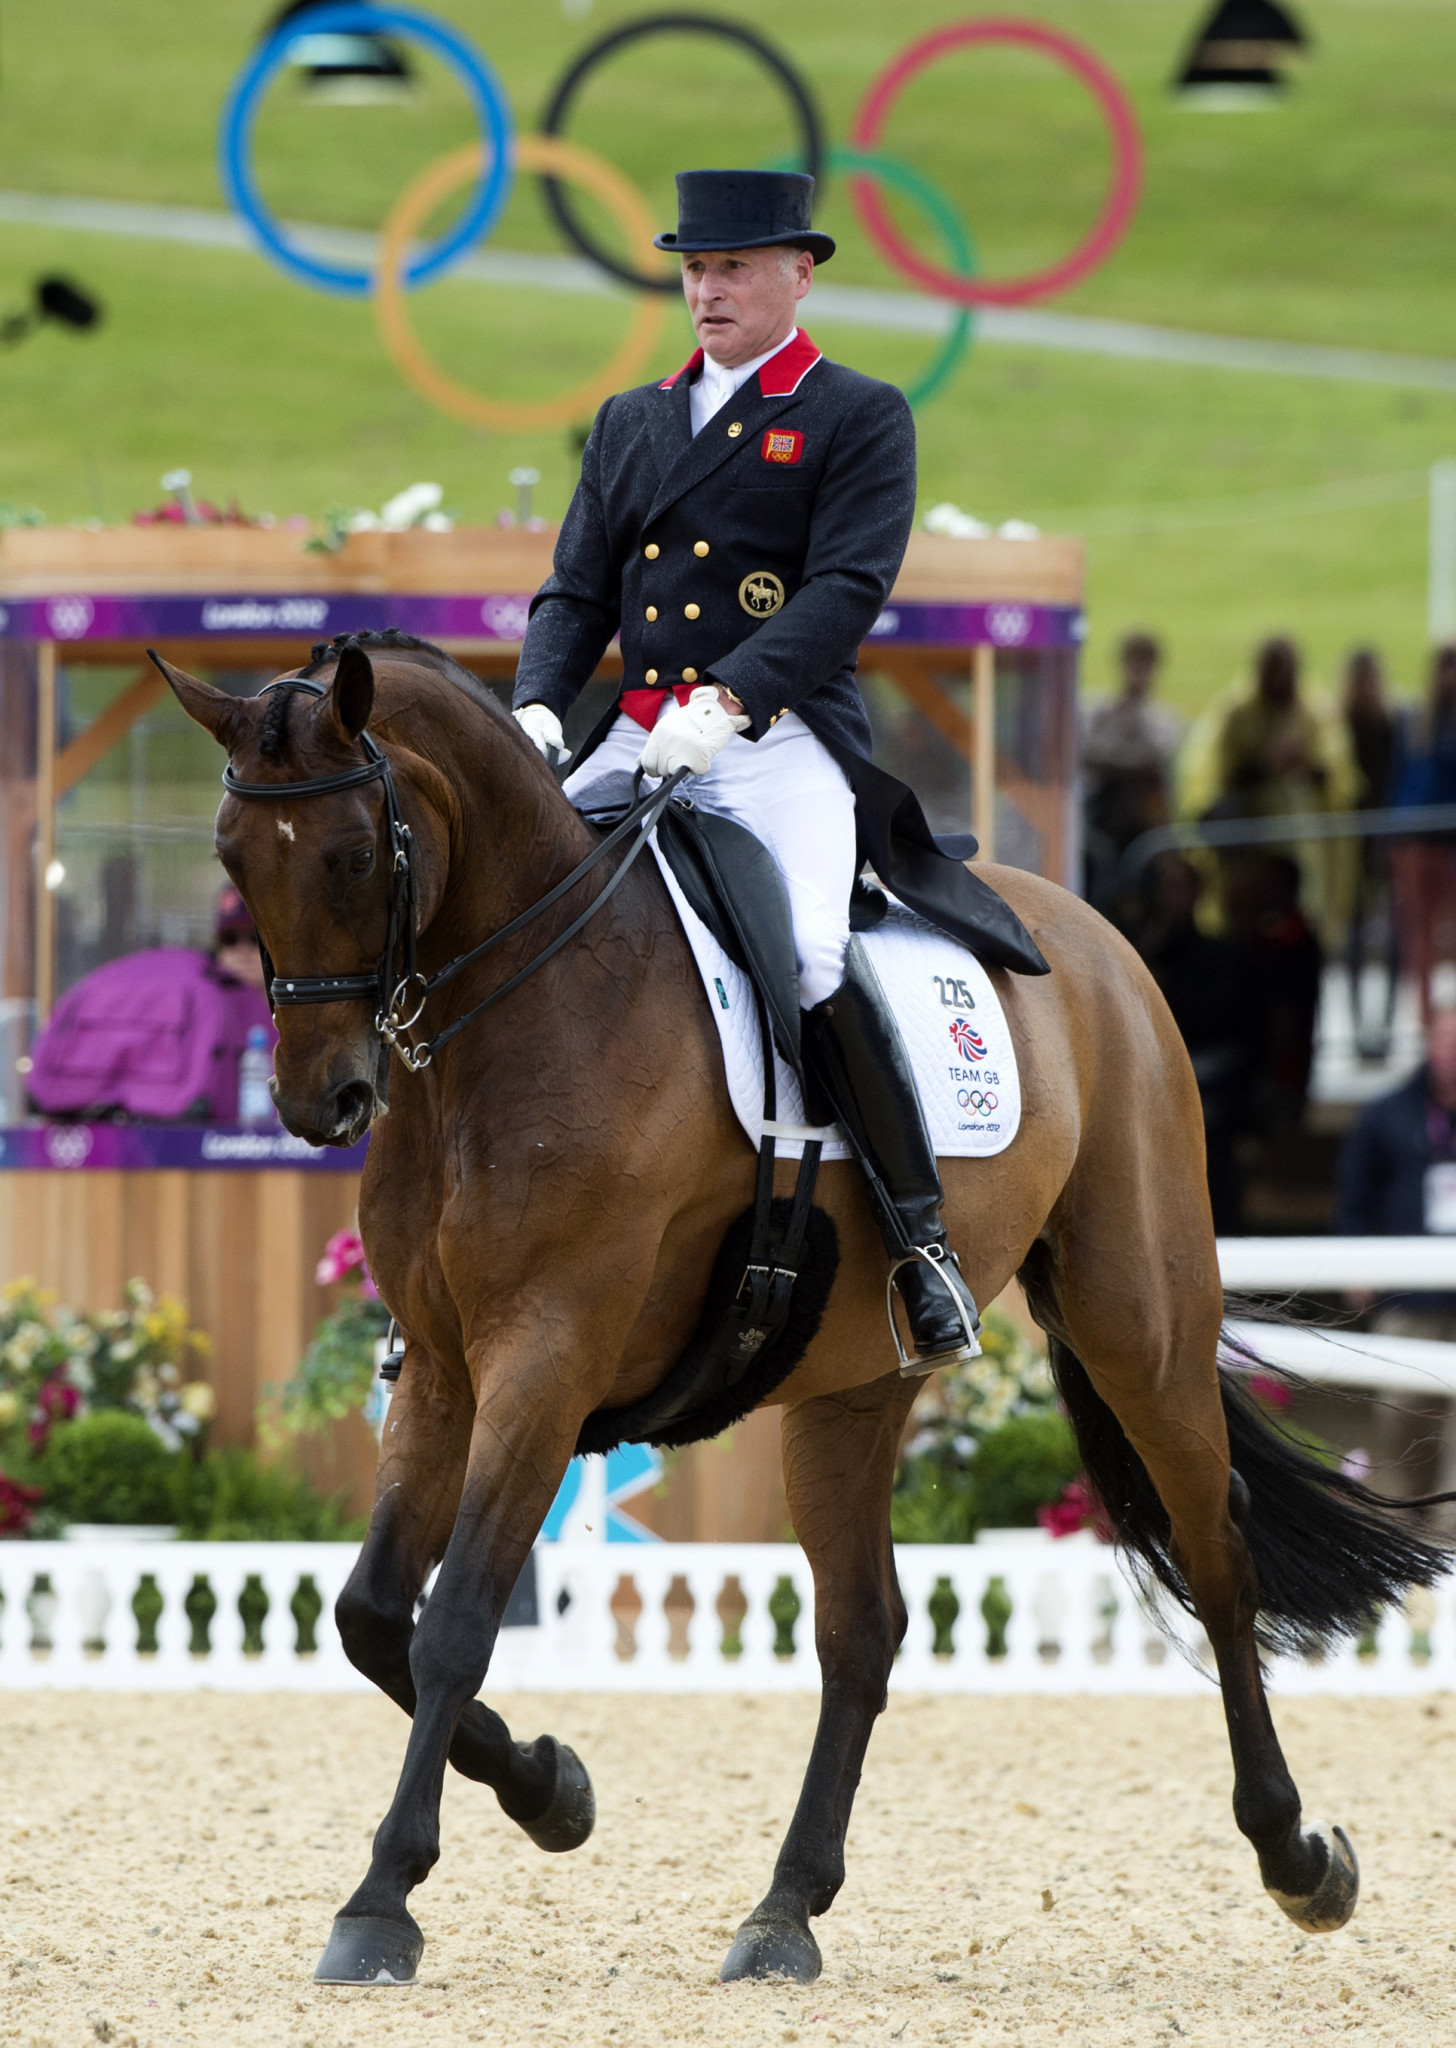 Britain's 64-year-old triple Olympian Richard Davison is among those due to compete this weekend at the FEI Dressage Nations Cup in Compiègne, France ©Getty Images